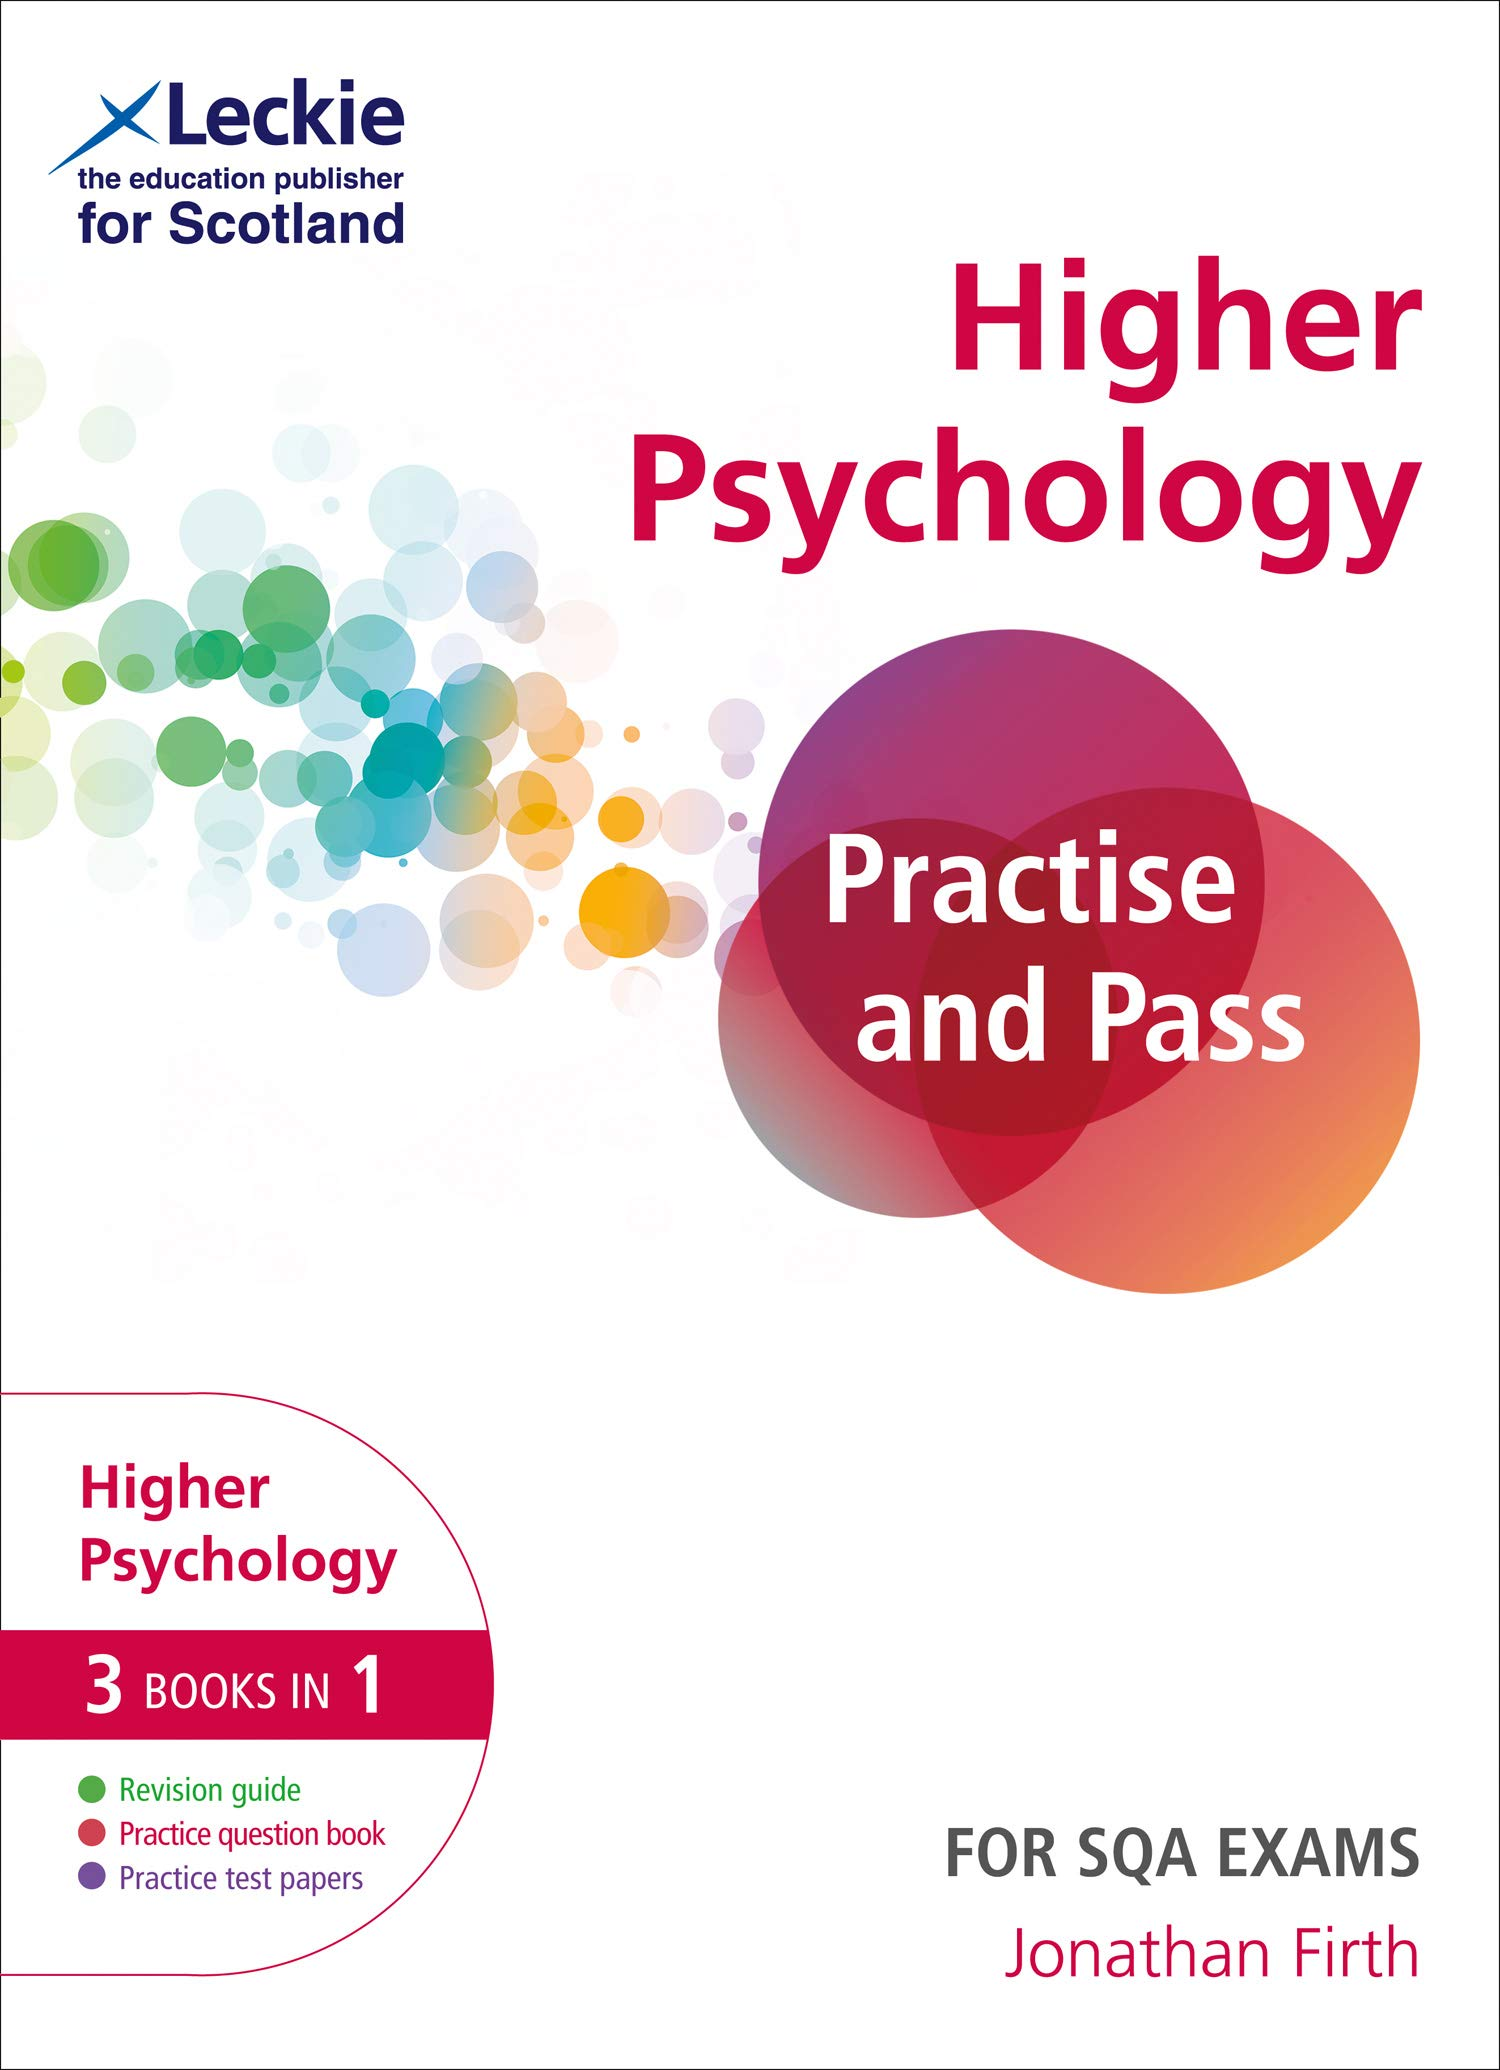 Higher Psychology: Practise and Pass - Brand new for 2019, this book comprises a revision guide that includes all of the Higher Psychology topics, an extended section of practice questions and tasks, and three full-length sample exams.There is also a brief guide to the Higher Assignment, and evidence-based information on how to study and revise effectively.This book is a must have for Higher Psychology students, for the 2018-19 academic year onwards. Buy here.